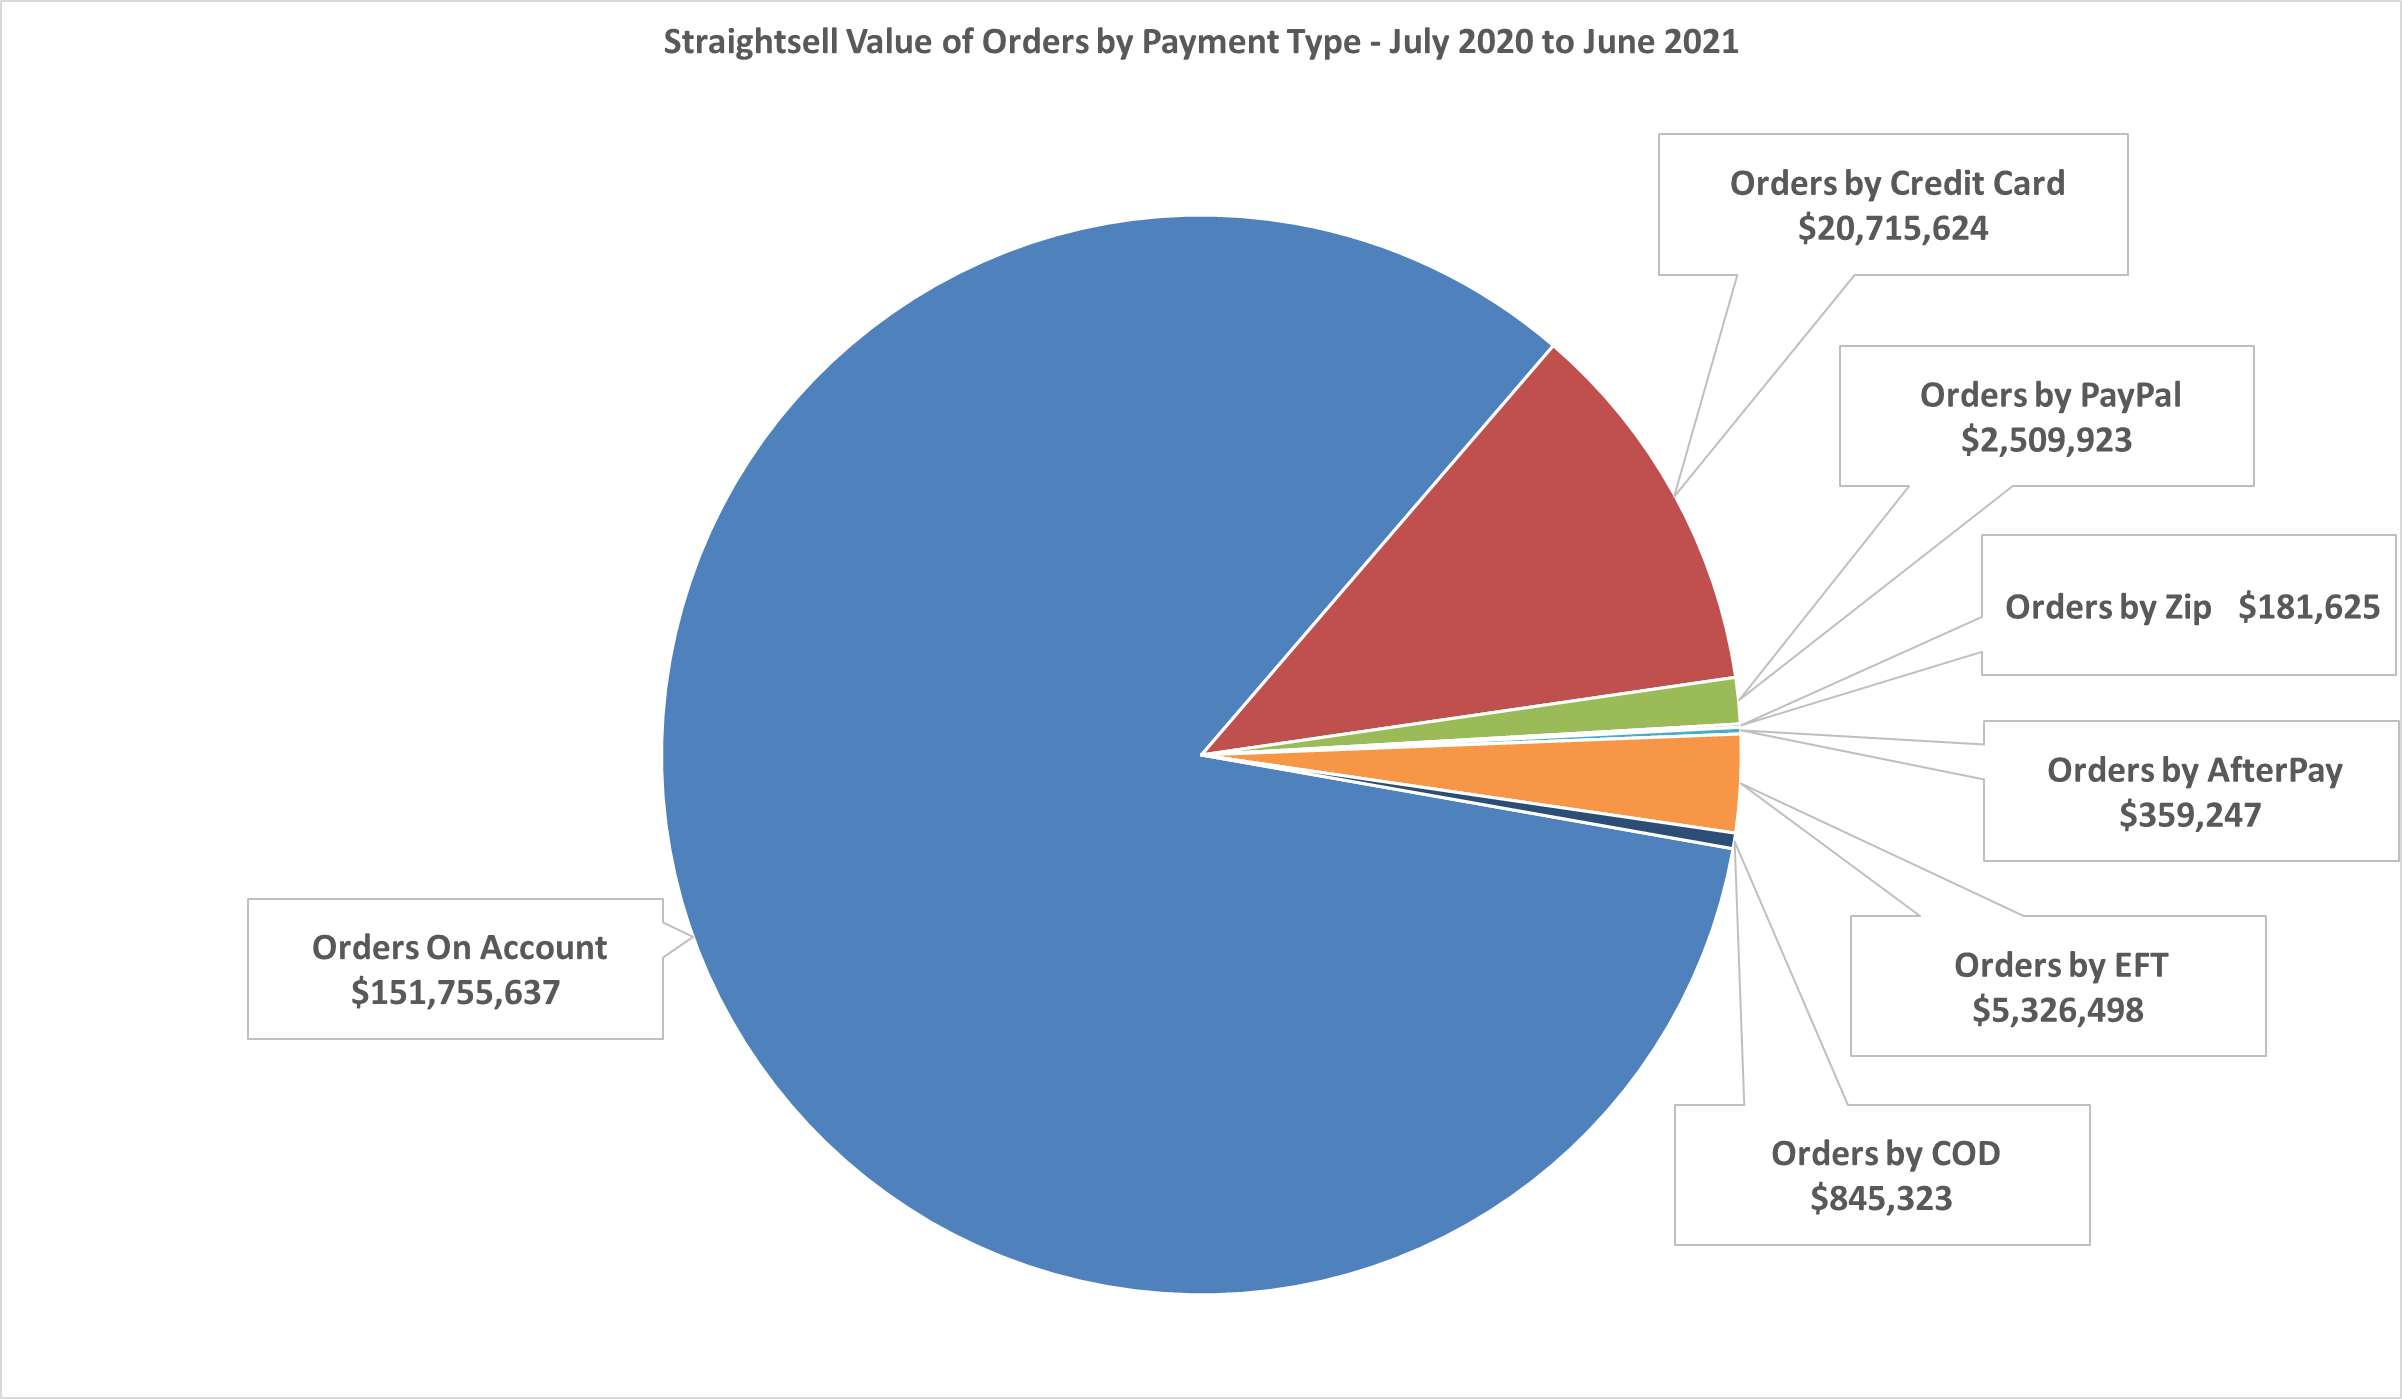 Straightsell Value of Orders by Payment Type - July 2020 thru June 2021